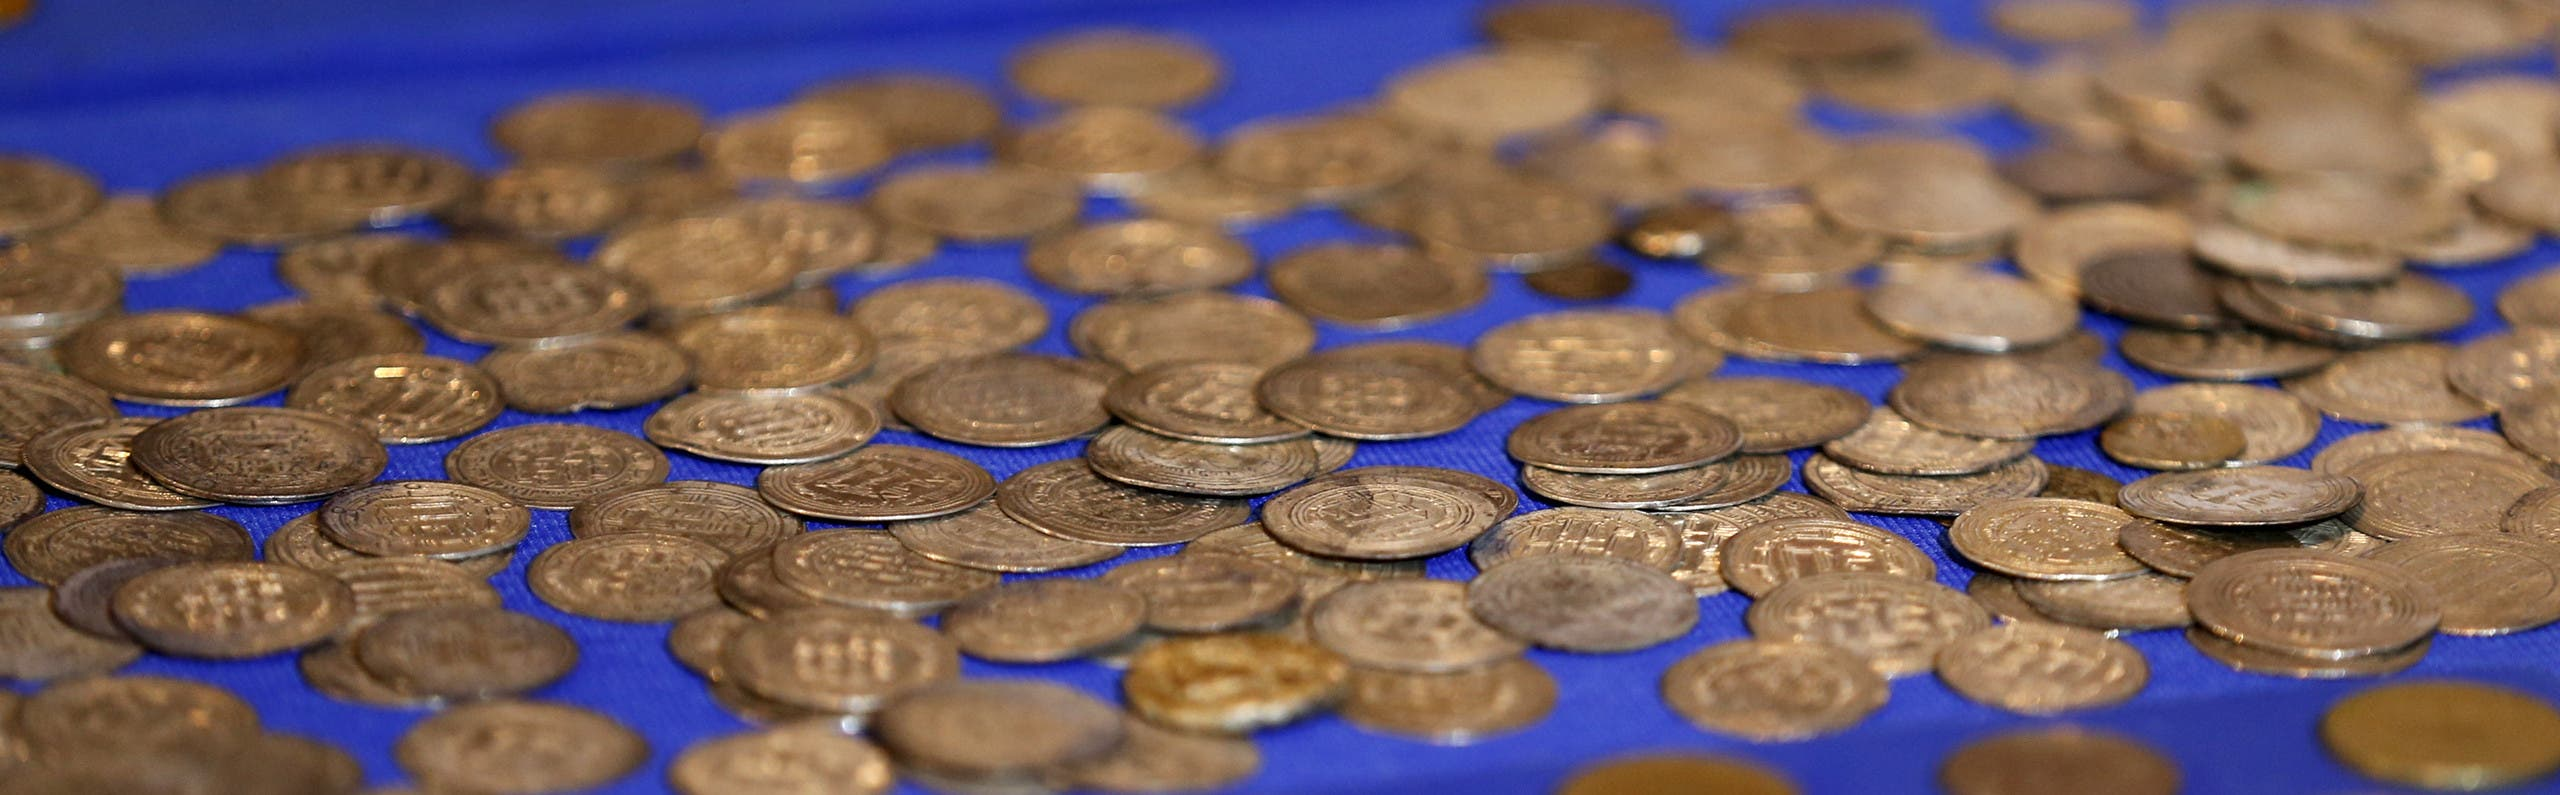 Recovered coins are seen at the National Museum of Iraq in Baghdad July 15, 2015. (Reuters)